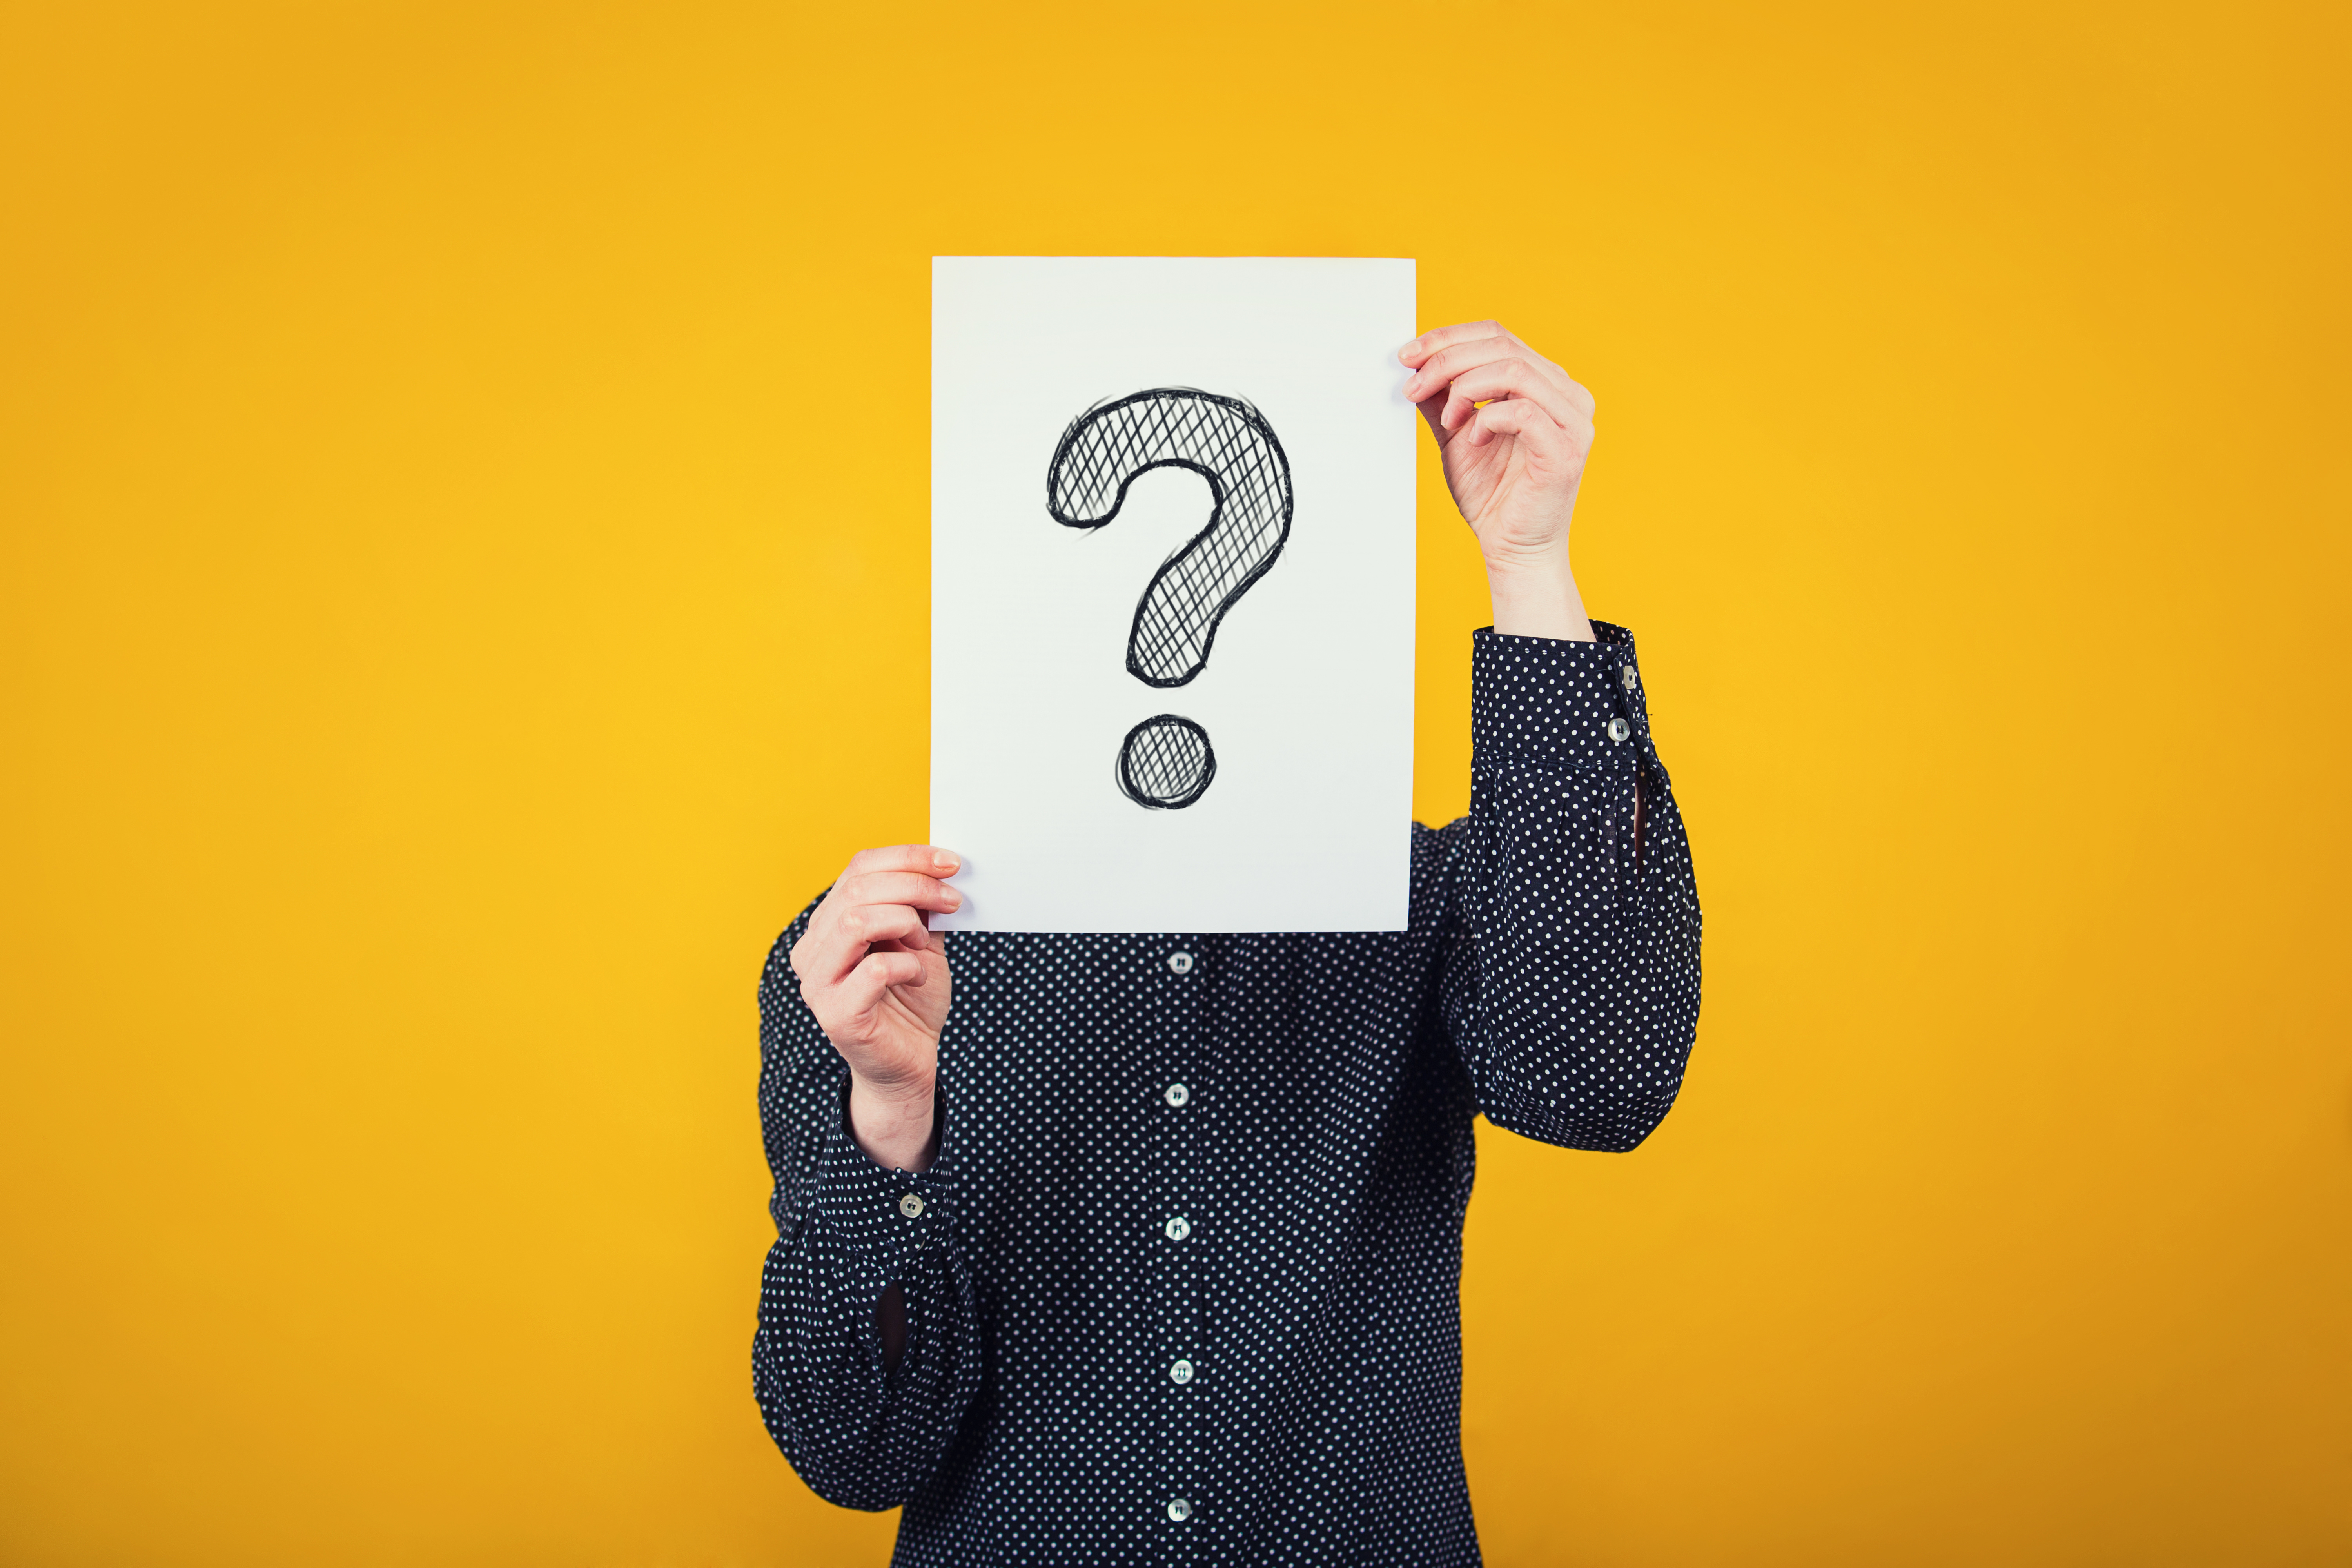 Businesswoman covering face using a white paper sheet with drawn question mark, like a mask, for hiding her identity. Isolated on yellow wall background